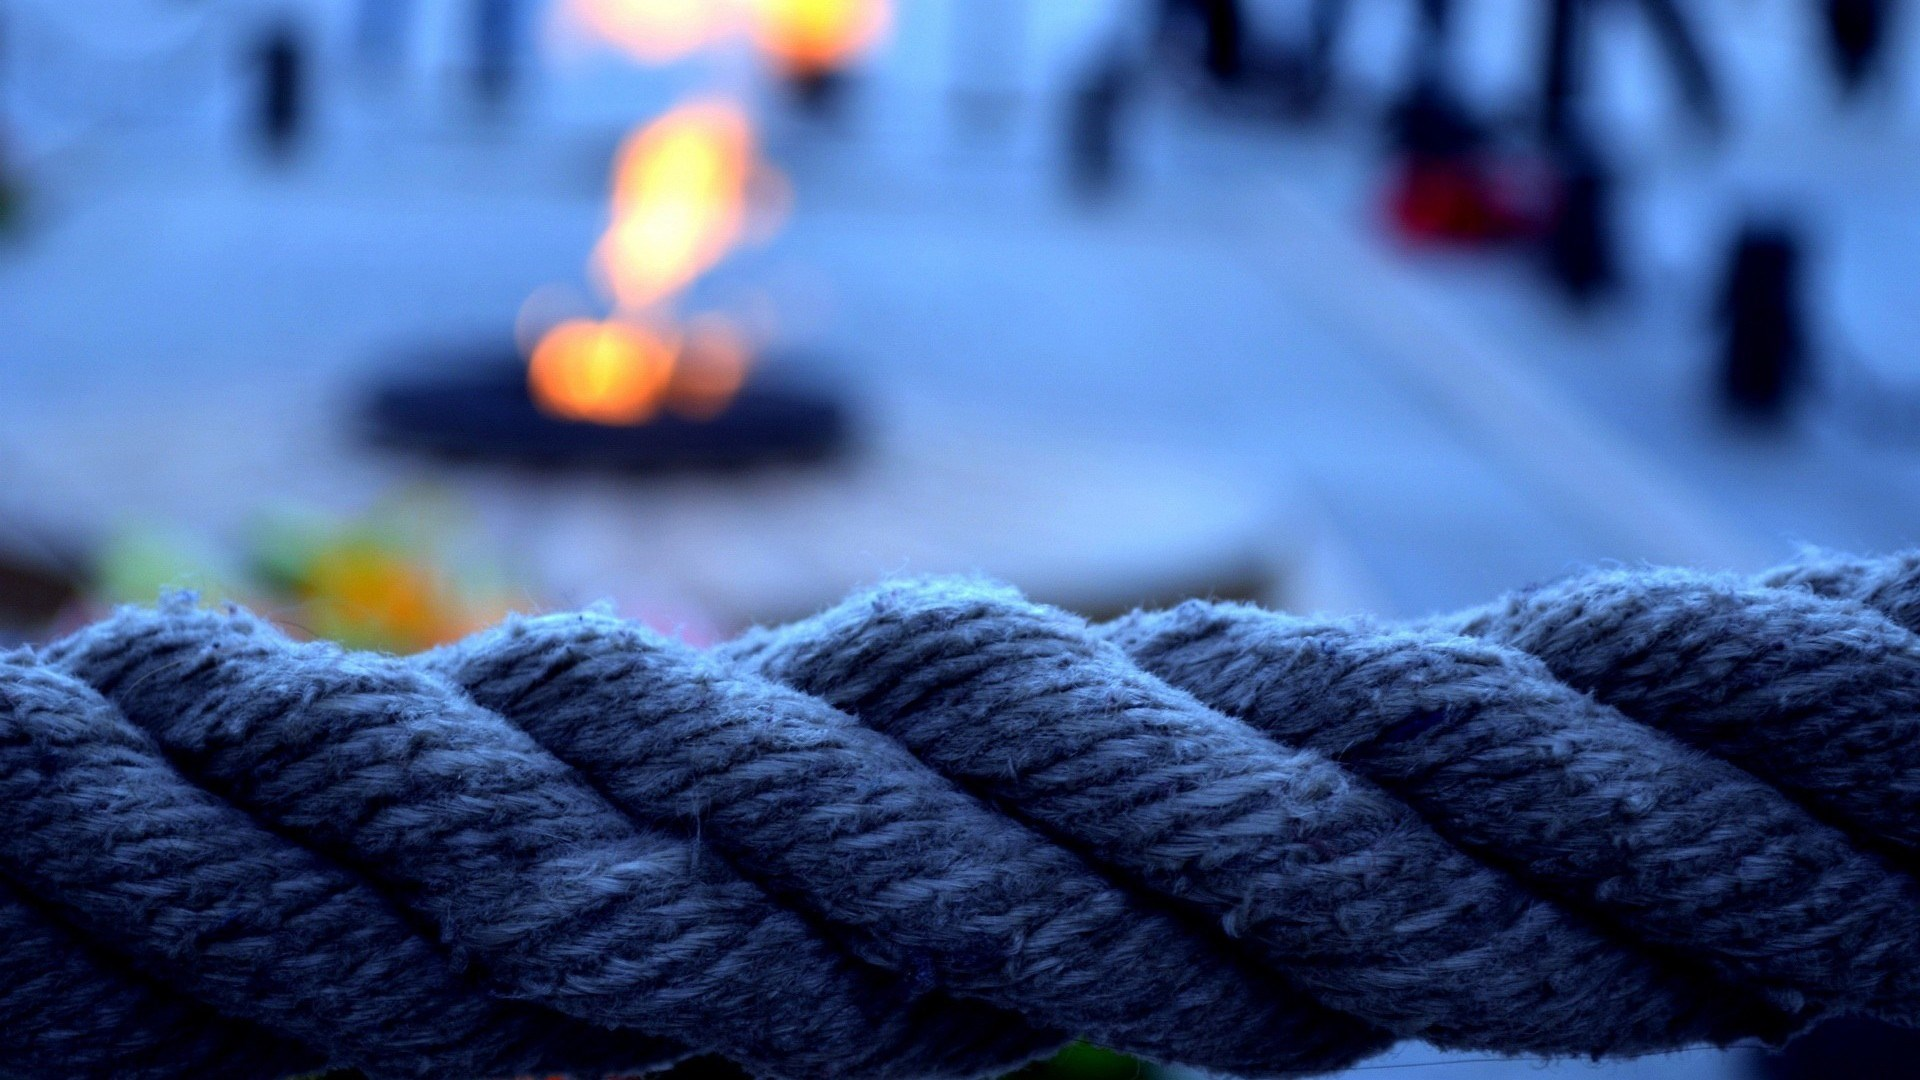 Bokeh Rope Close-Up